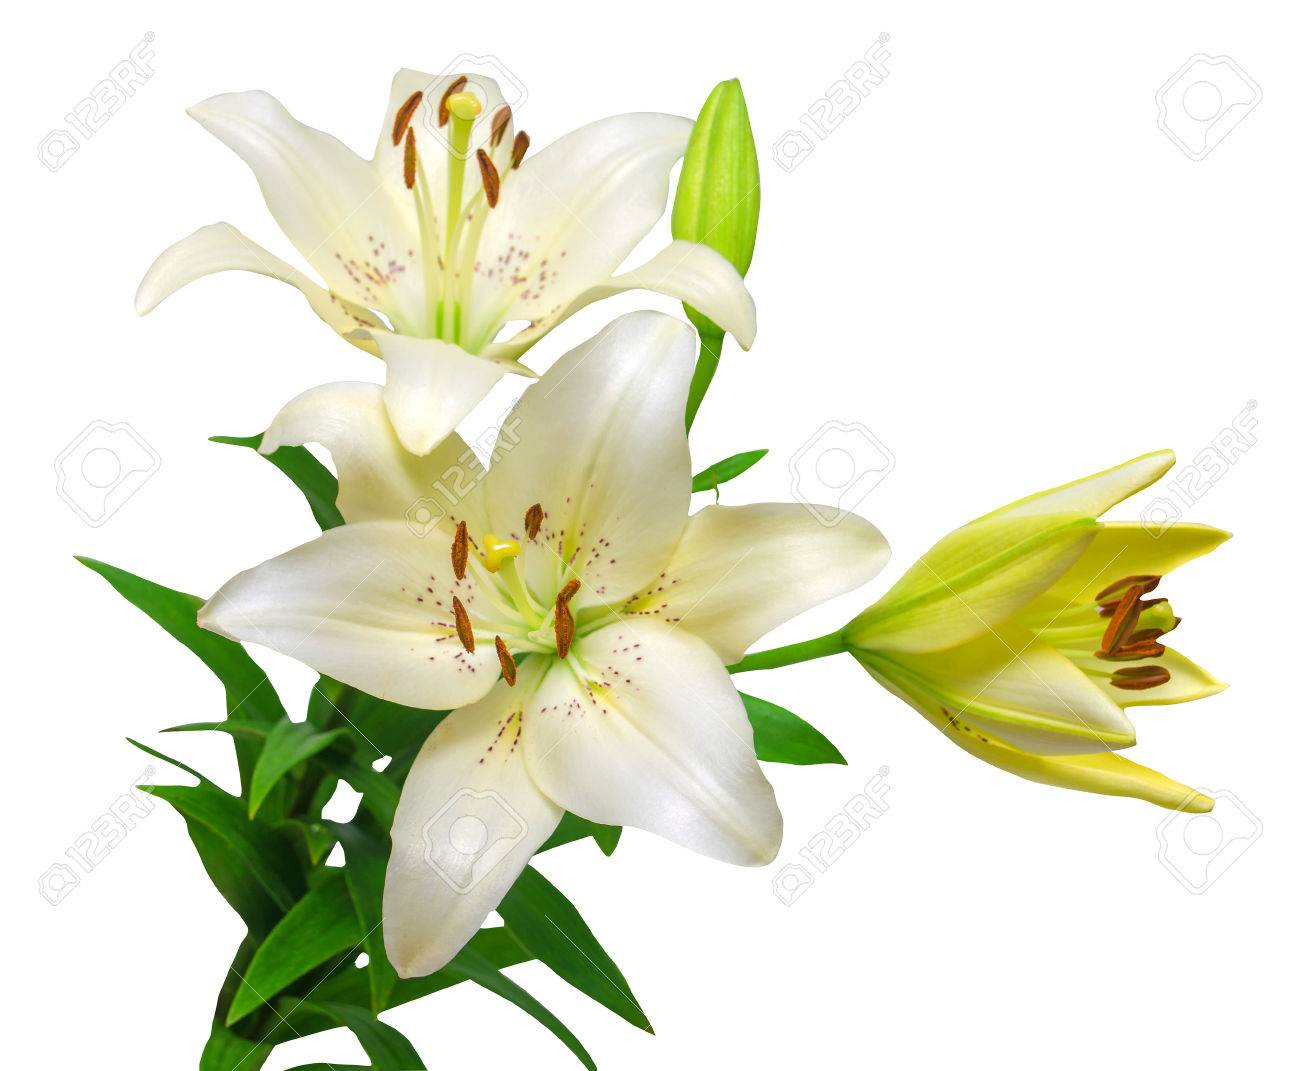 Bouquet of beautiful white lily flowers isolated on white background bouquet of beautiful white lily flowers isolated on white background stock photo 70561402 izmirmasajfo